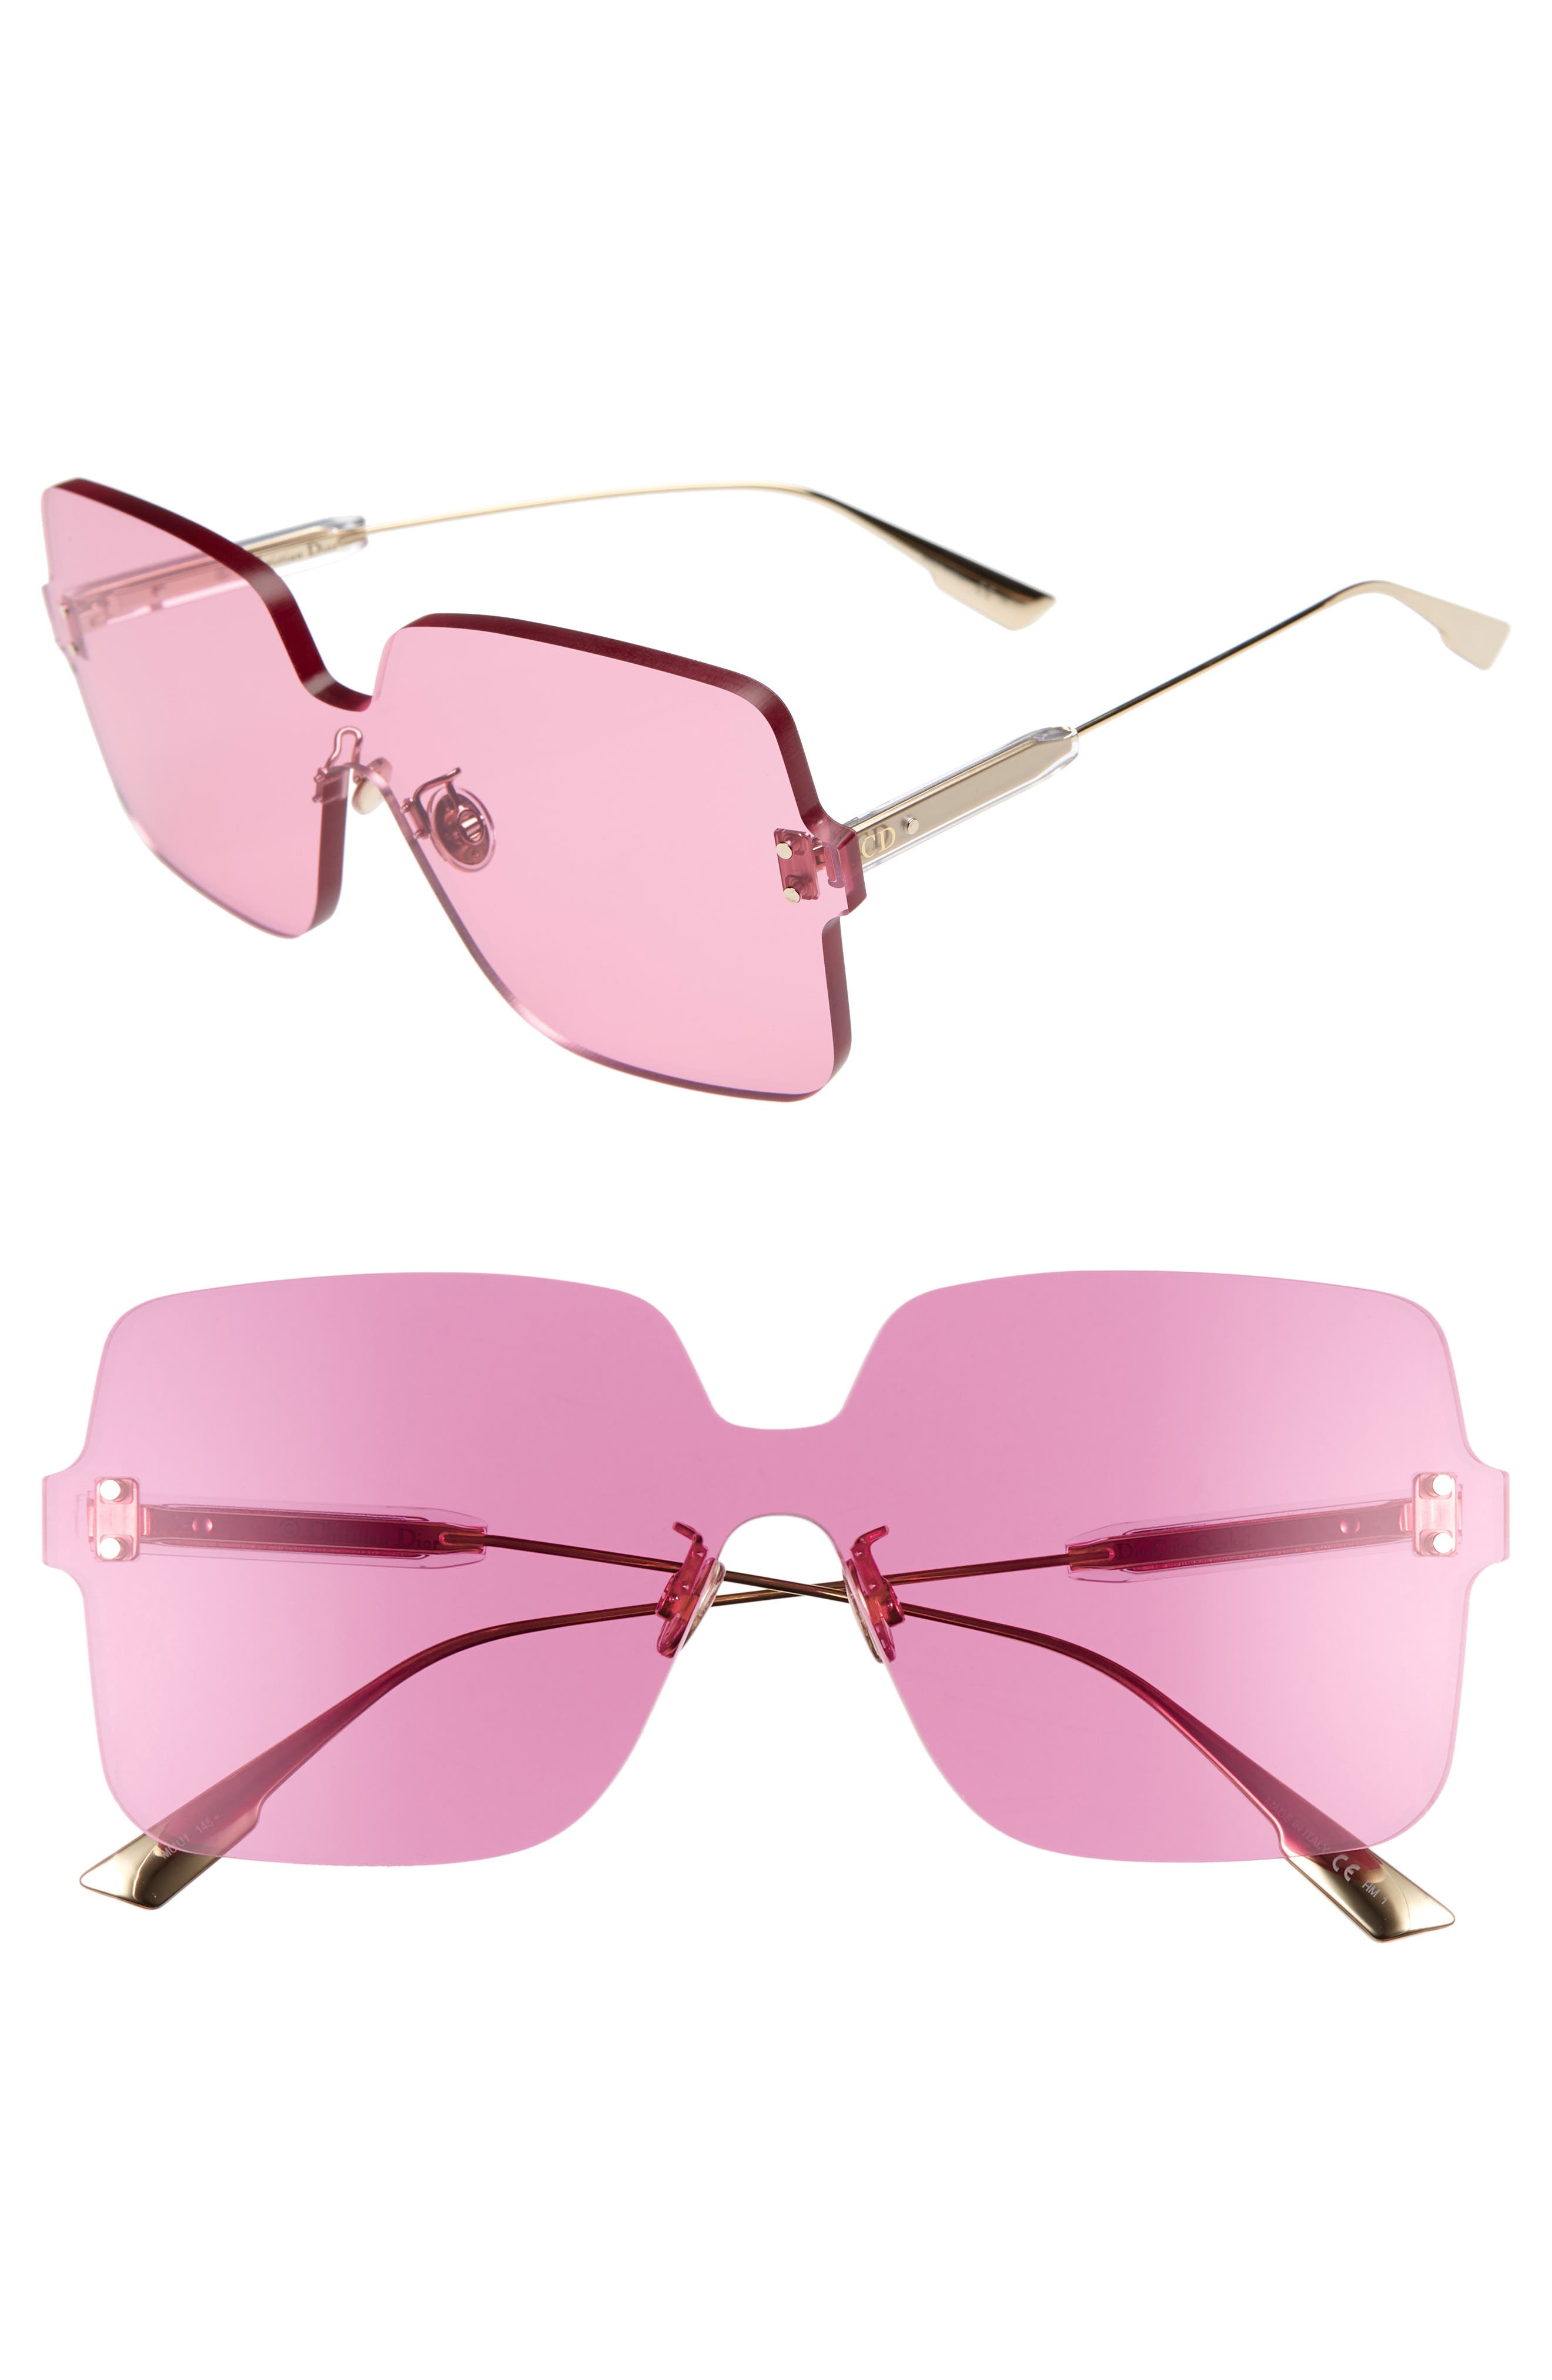 Christian Dior Quake1 147Mm Square Rimless Shield Sunglasses - Fuchsia